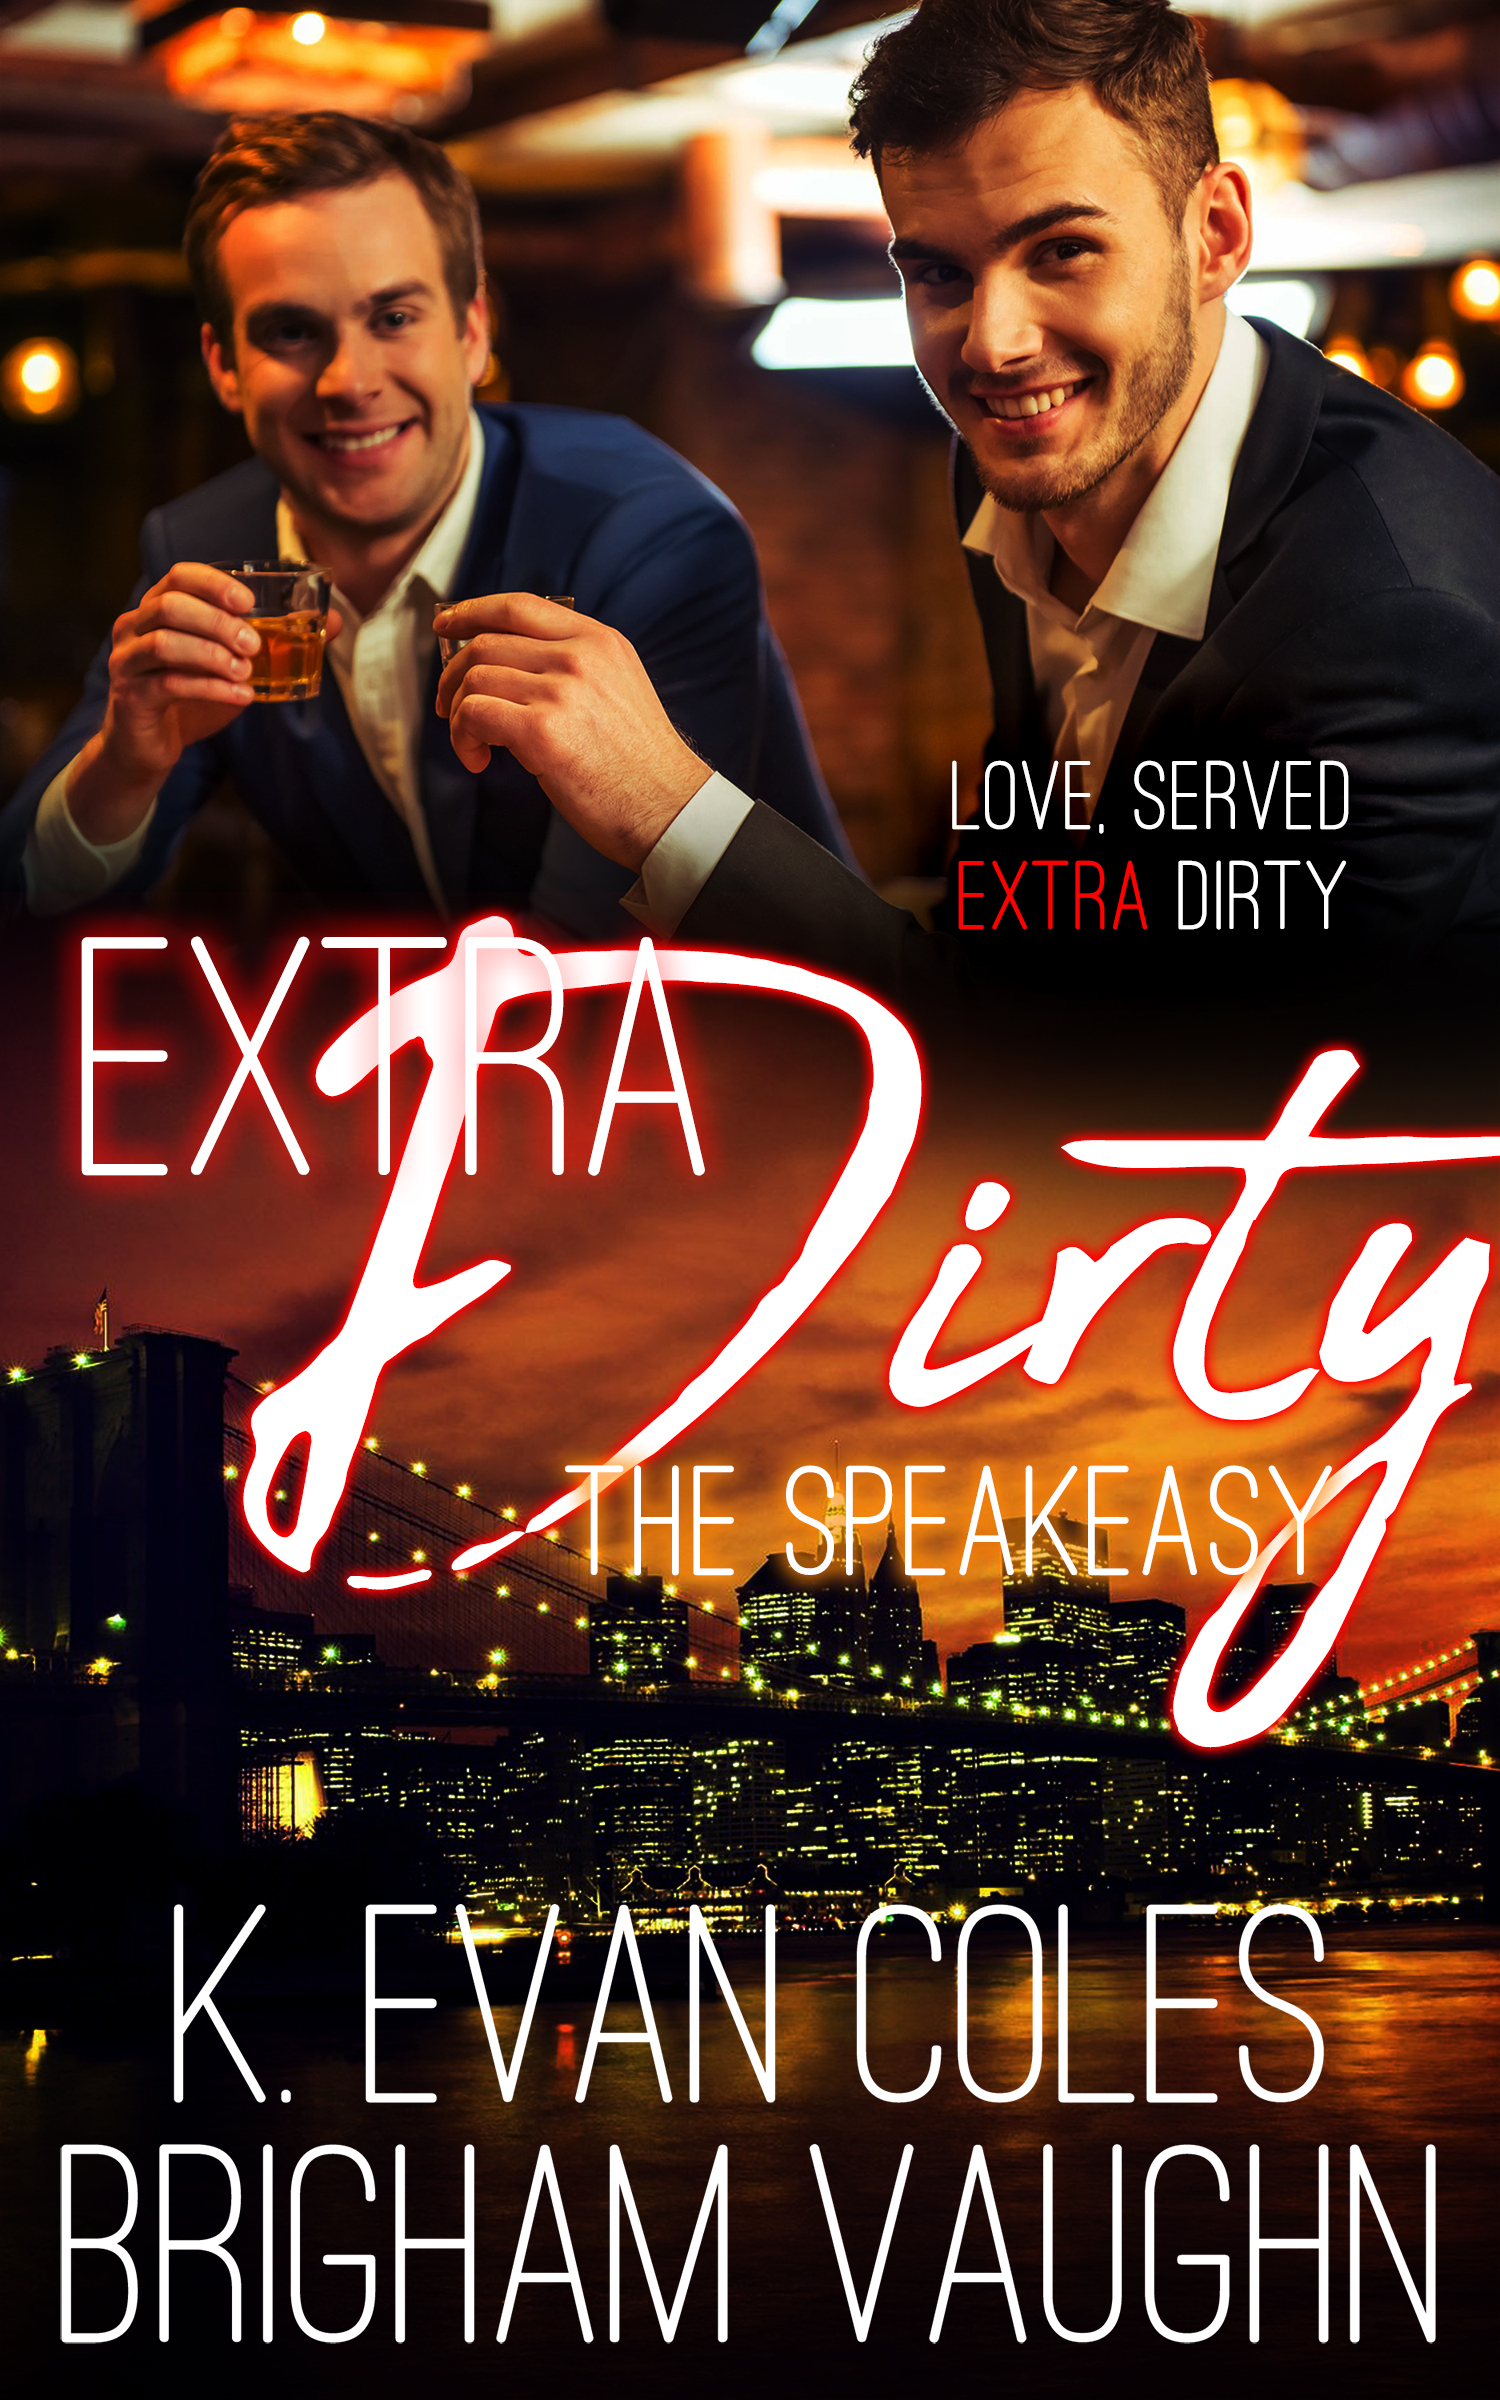 Guest Post and Giveaway: Extra Dirty by K. Evan Coles and Brigham Vaughn